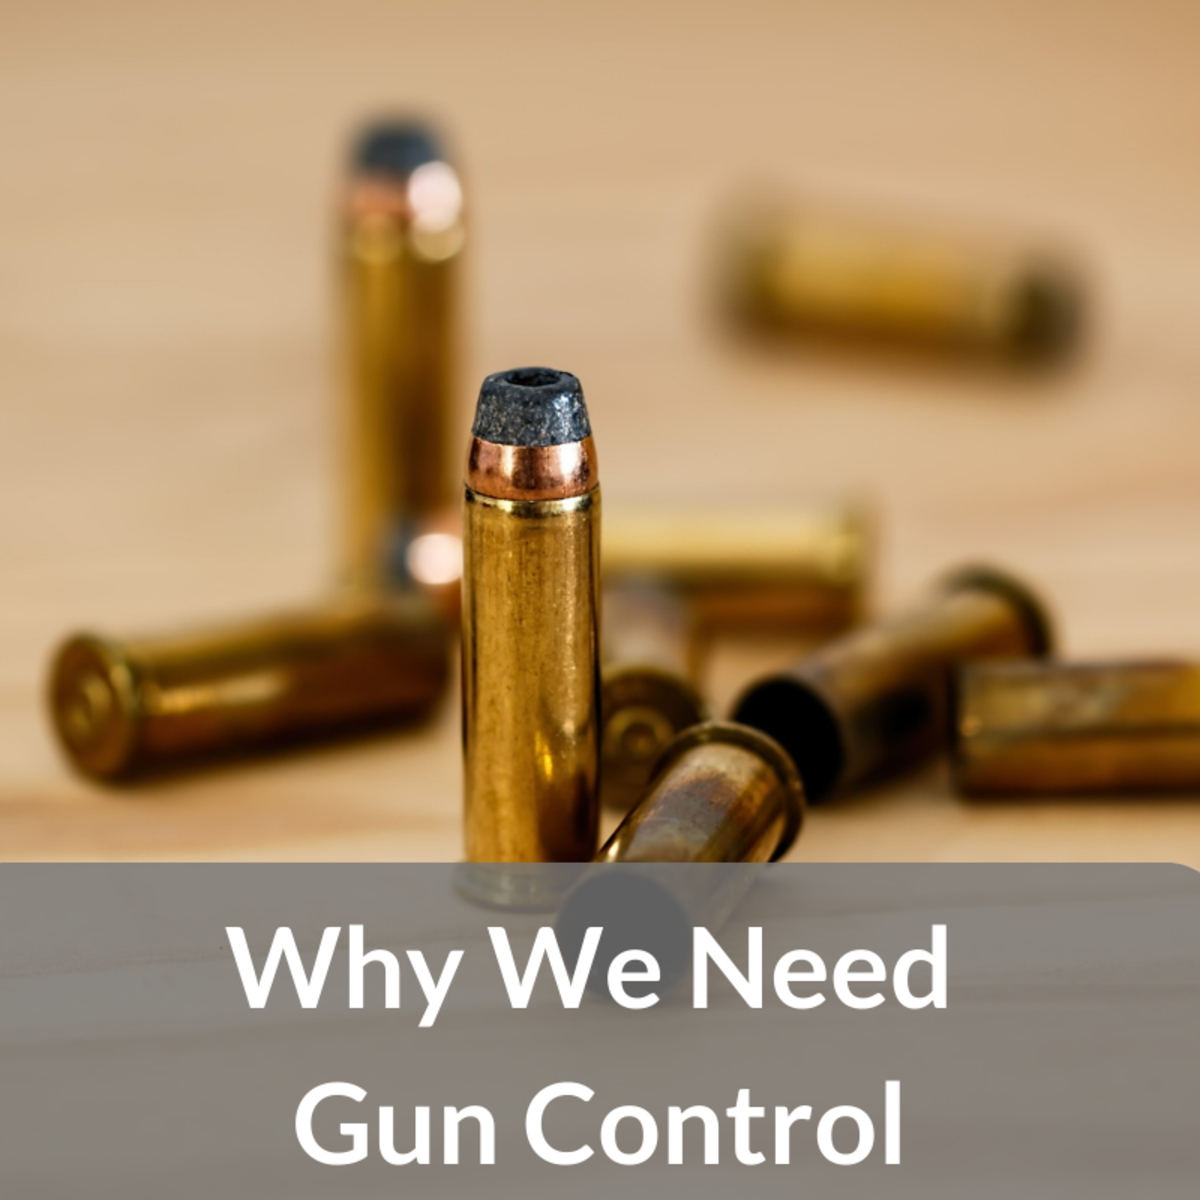 I recently read an article wherein the author compared gun control to restricting access to cars and alcohol. Here is my opinion about those comparisons.